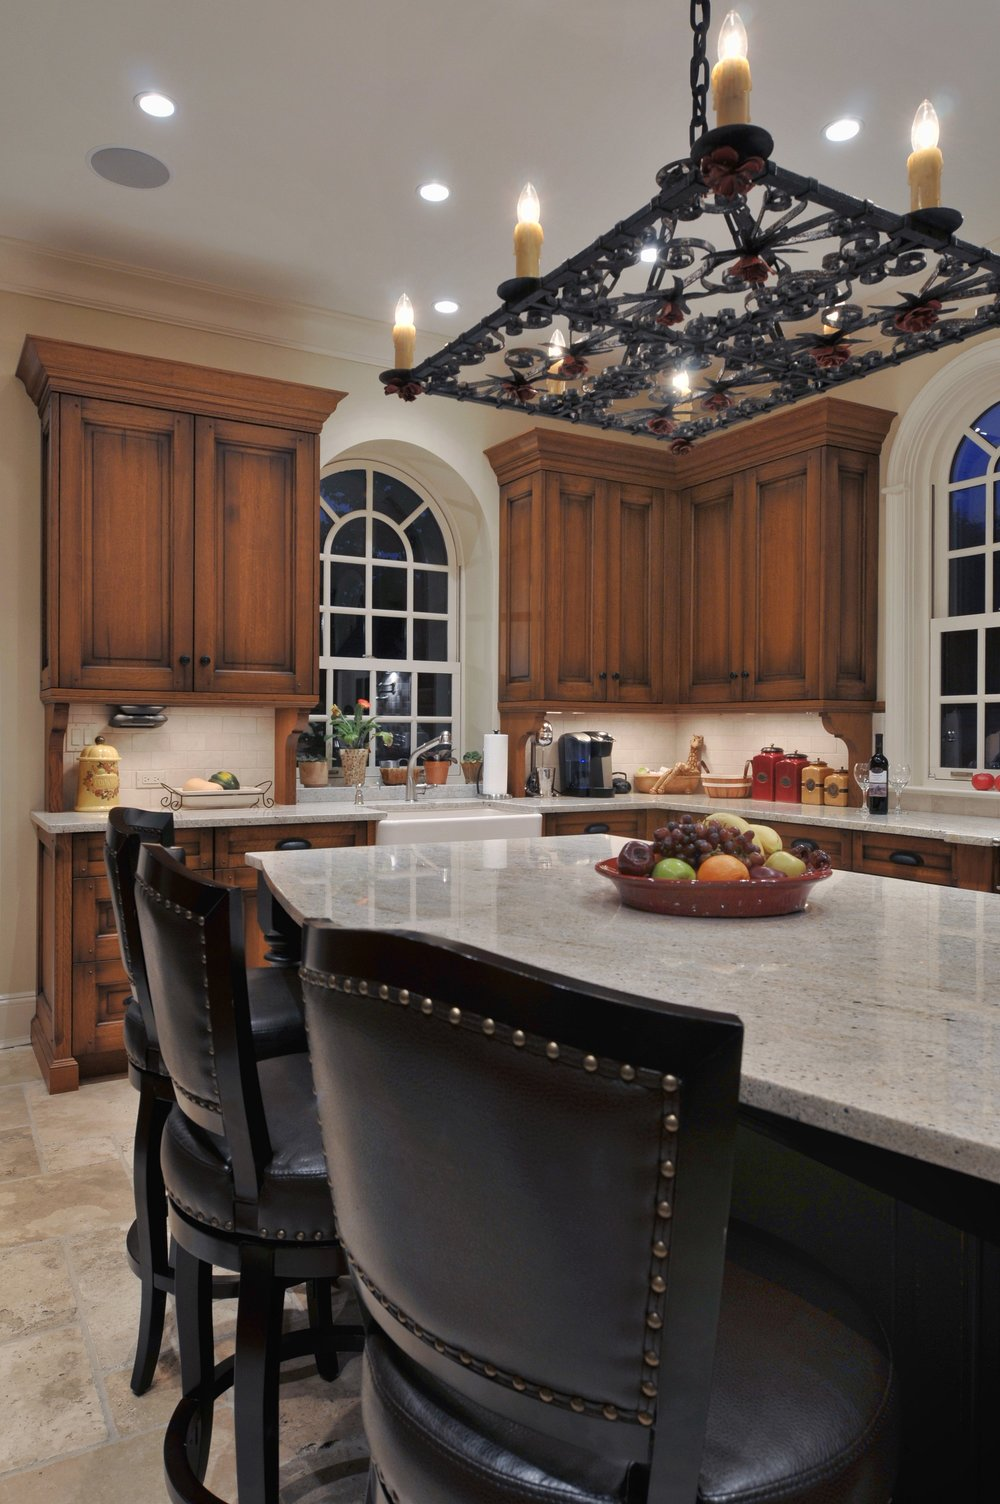 Traditional style kitchen with warm and bright lighting